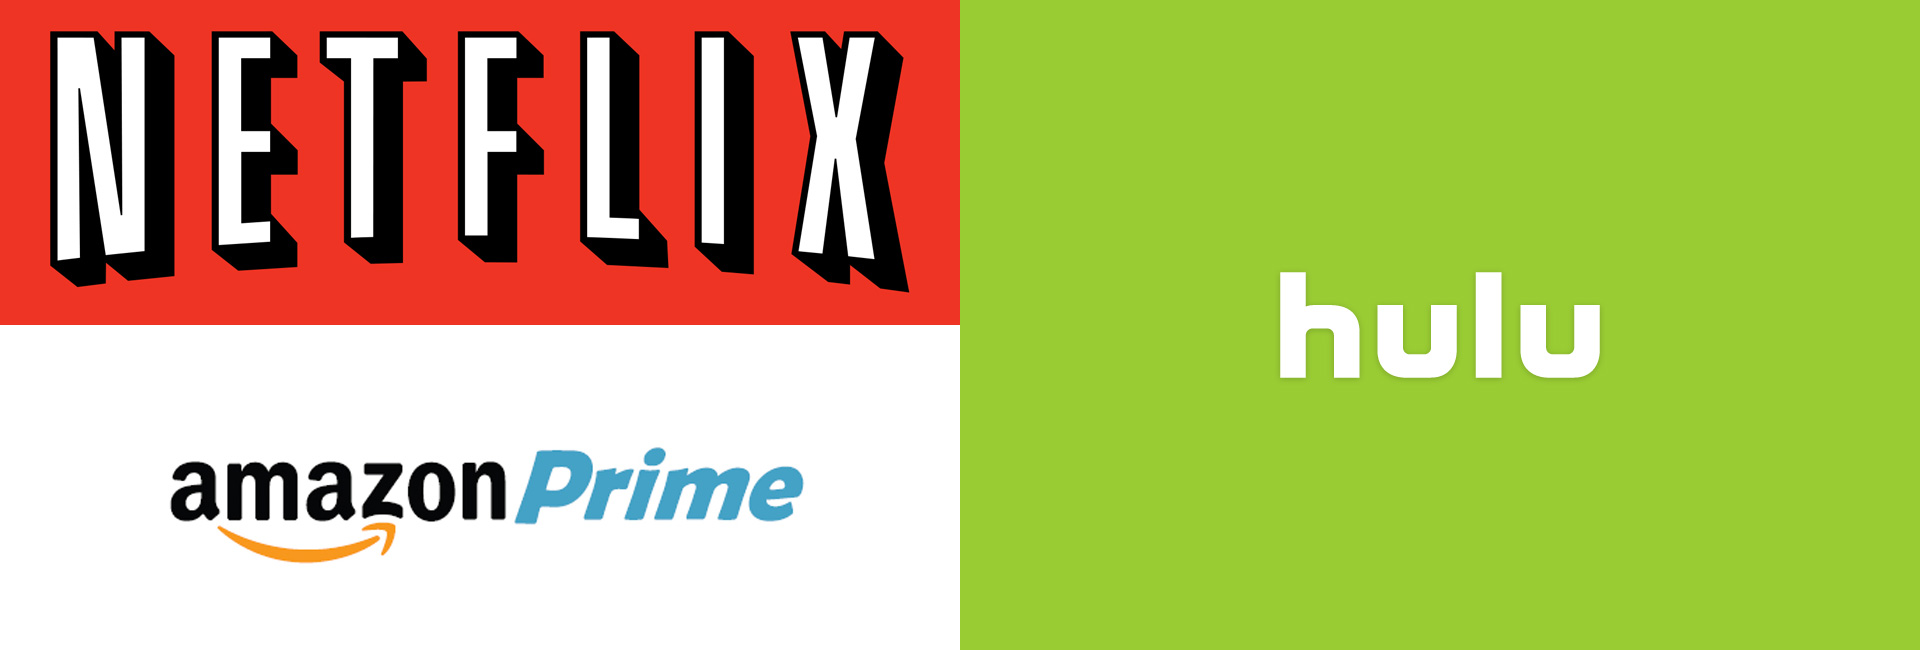 How Many Streams Can You Have At Once With WatchESPN Hulu - Us zip code for hulu